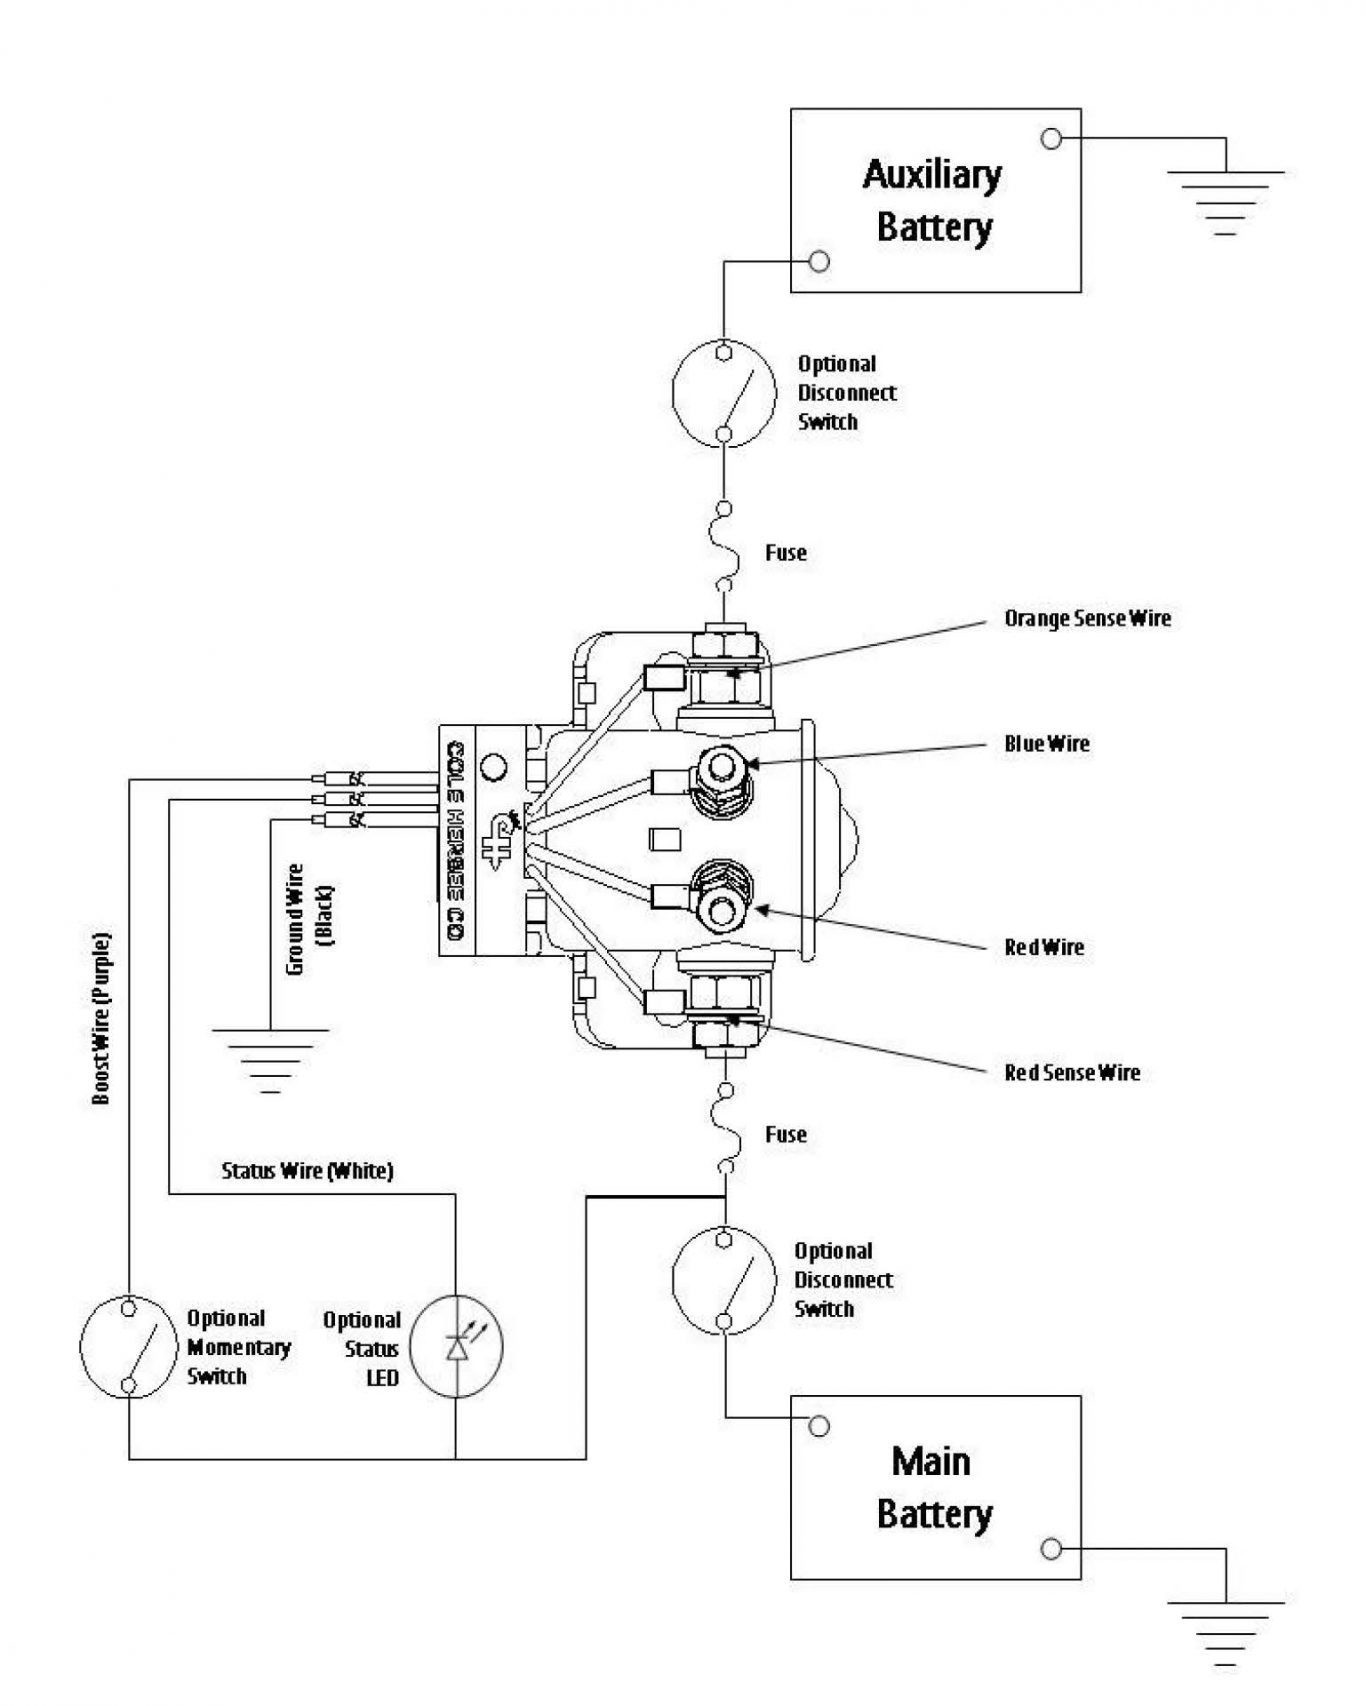 Garbage Disposal Parts Diagram Garbage Disposal Outlet Wiring Diagram Simple Awesome How to Wire A Of Garbage Disposal Parts Diagram